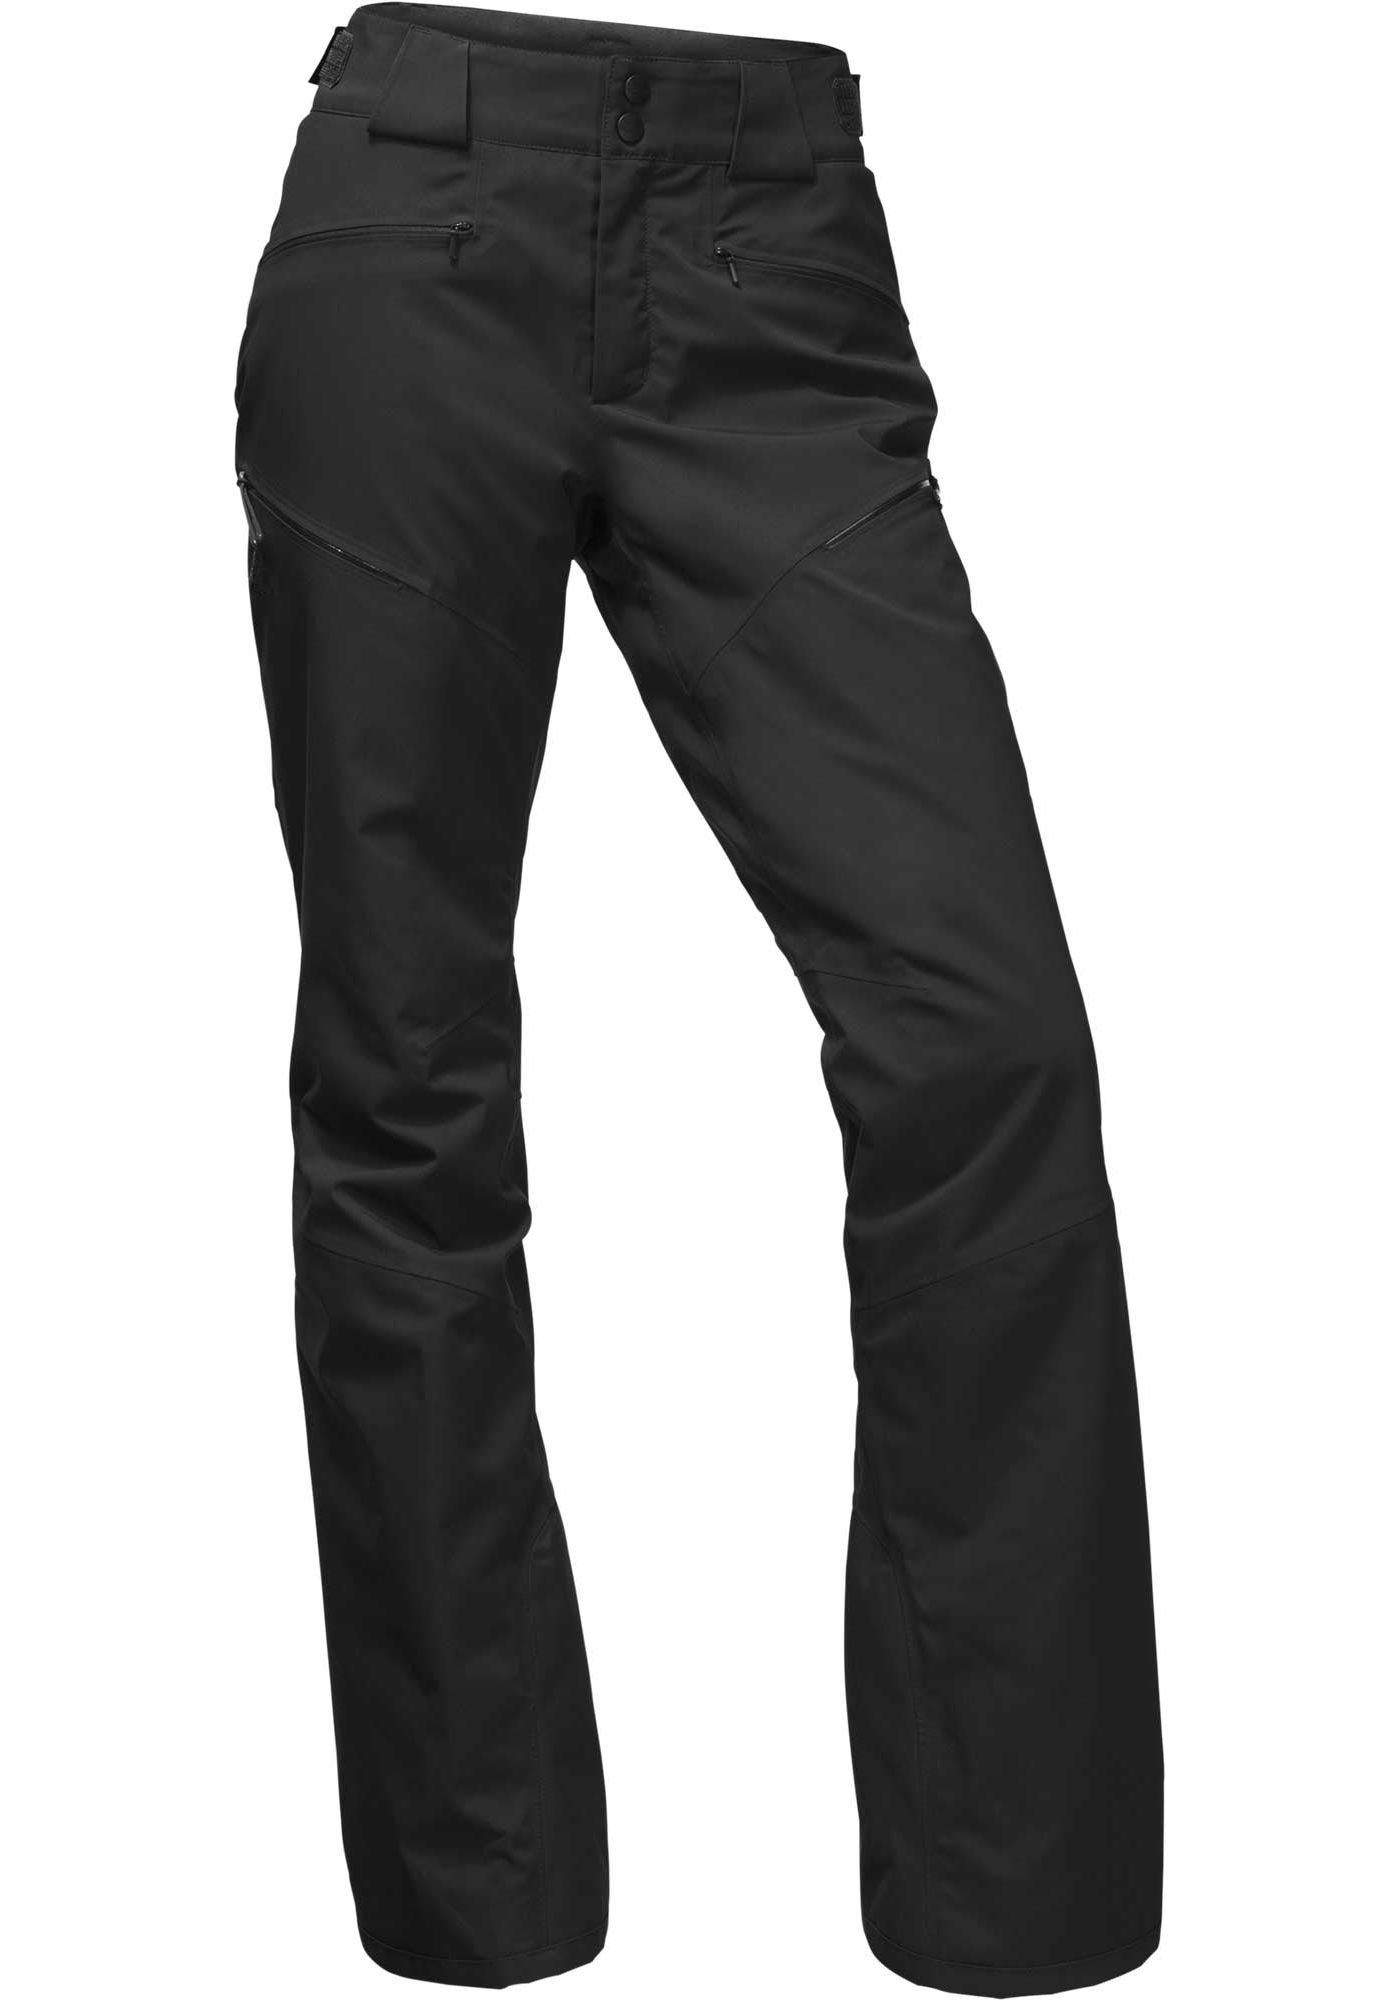 The North Face Women's Anonym Pants